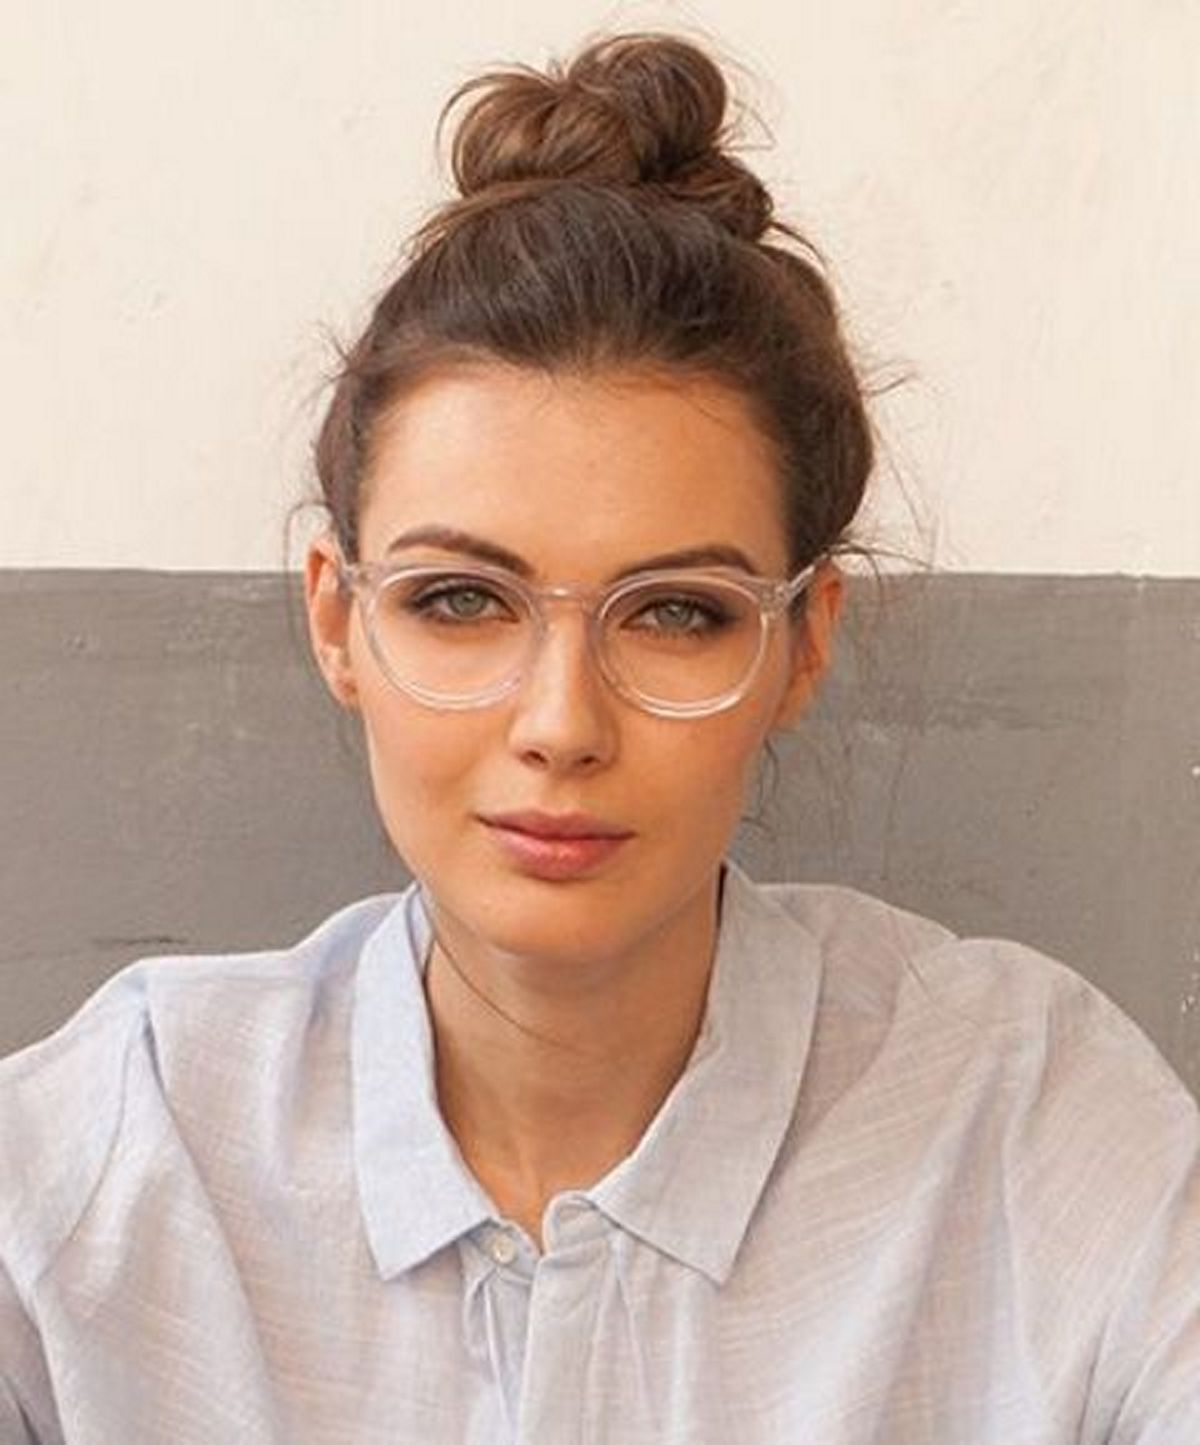 Awesome 51 Clear Glasses Frame for Women s Fashion Ideas  66c823af8d